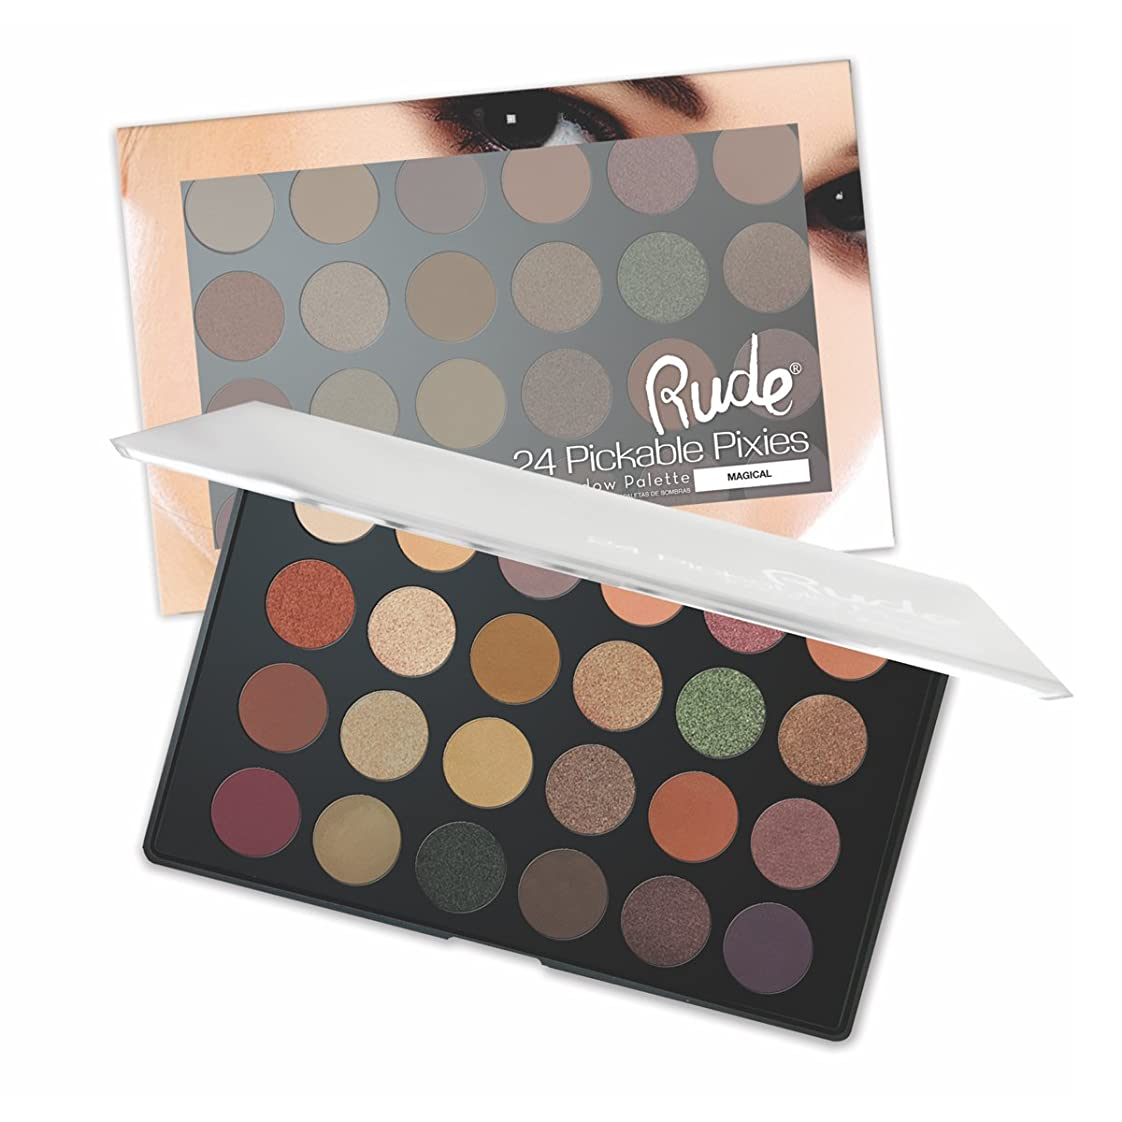 誤盟主衝動RUDE Peekaboo Pixies 24 Eyeshadow Palette - Magical (並行輸入品)